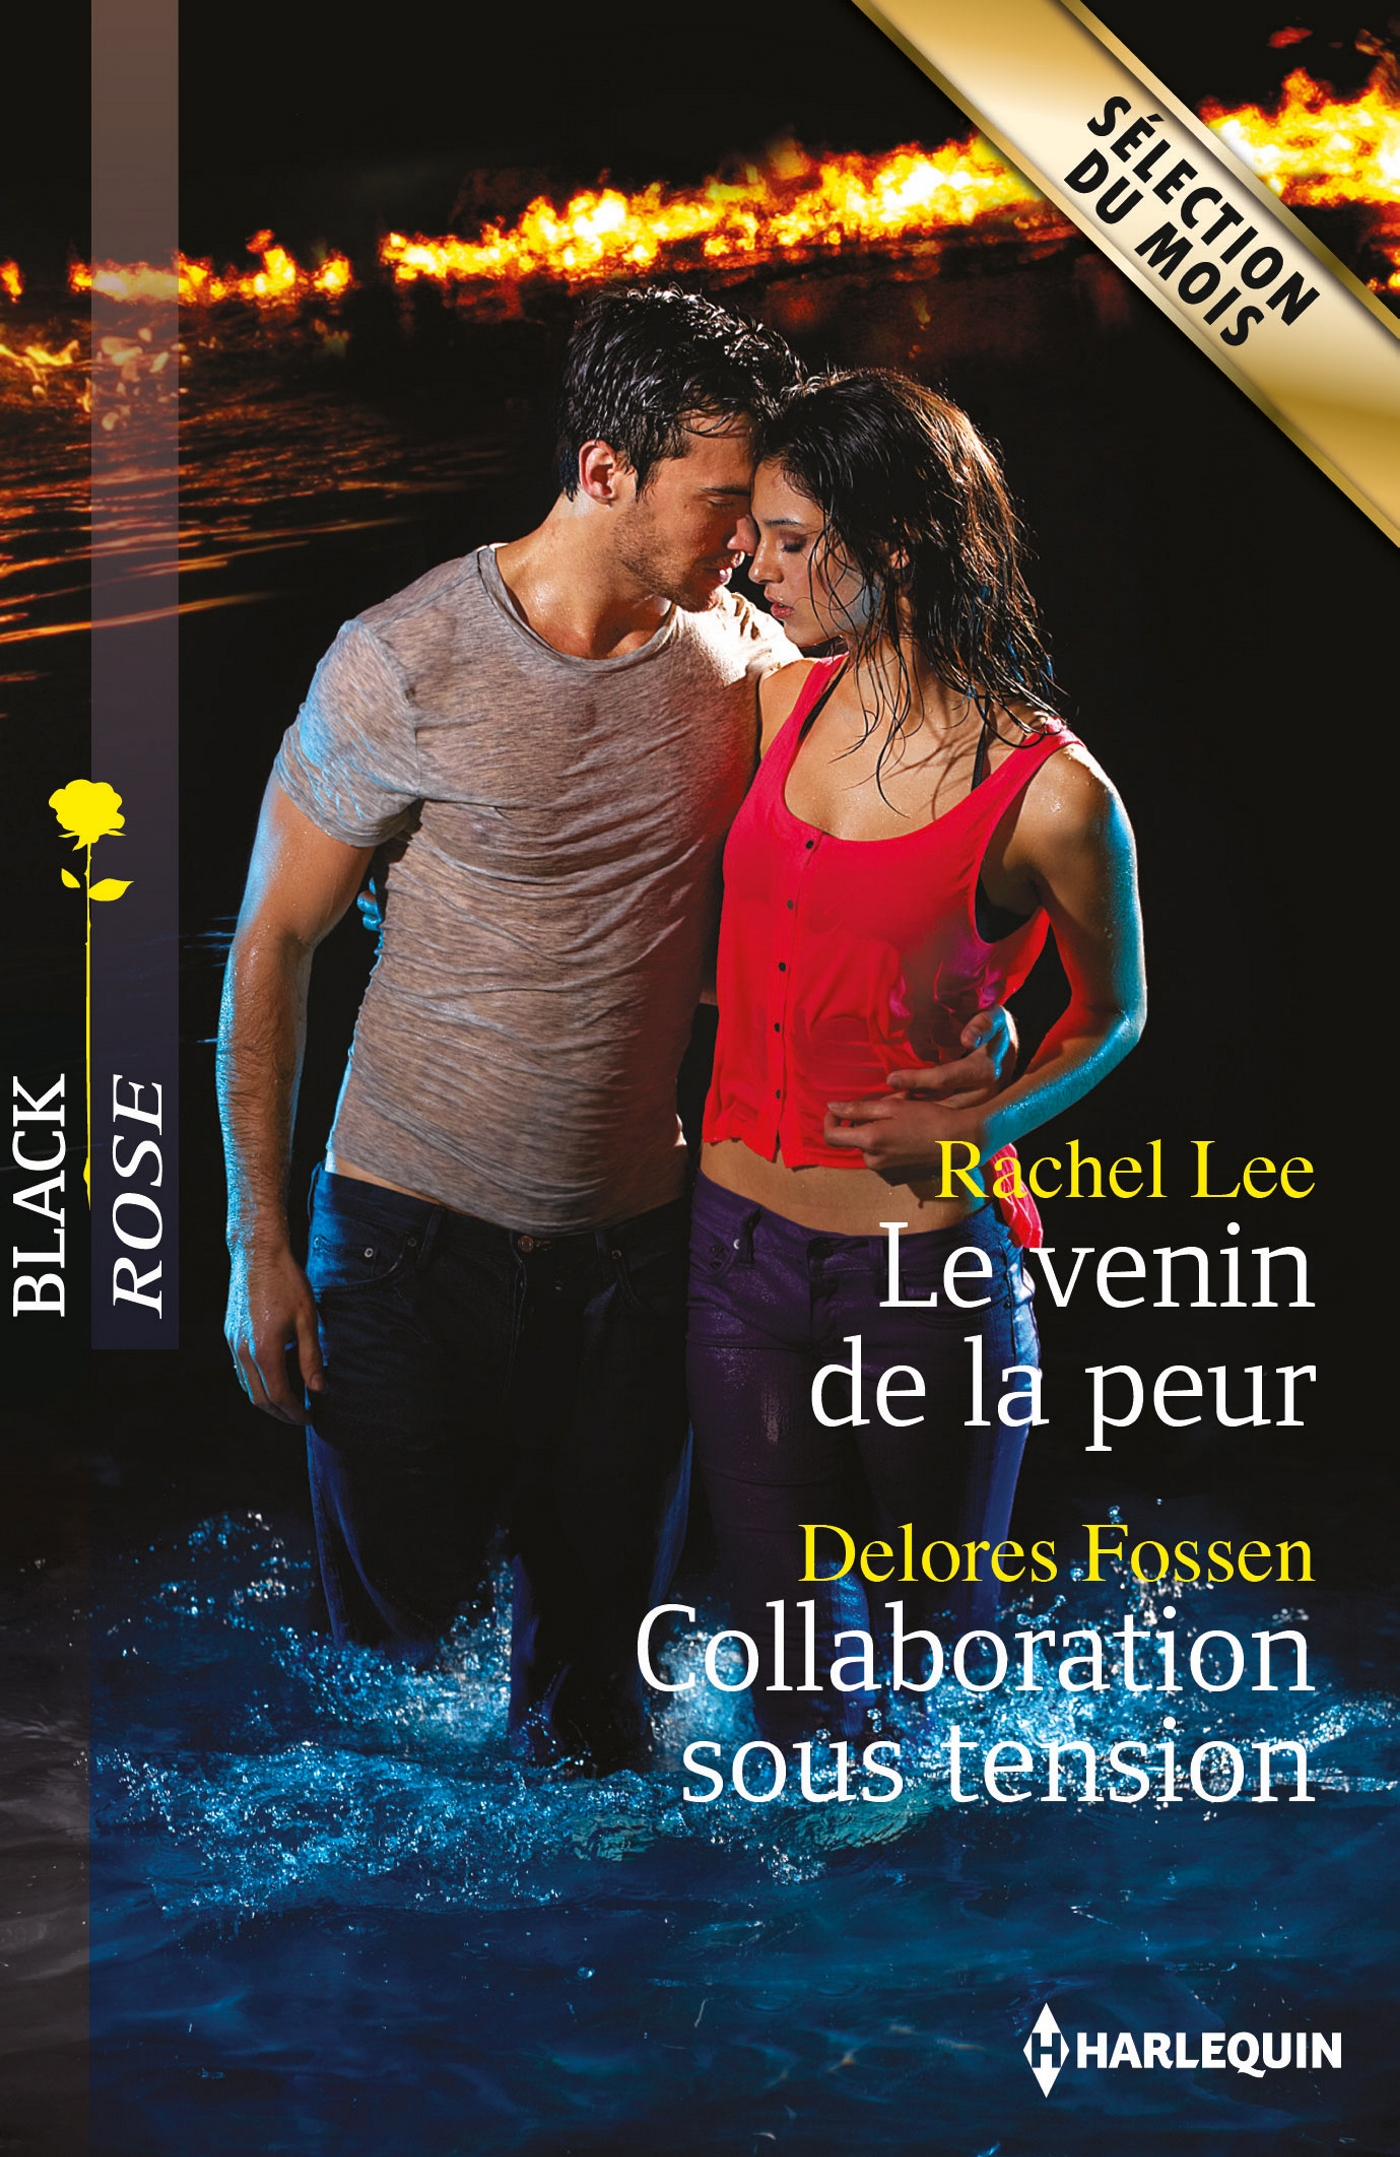 Le venin de la peur - Collaboration sous tension